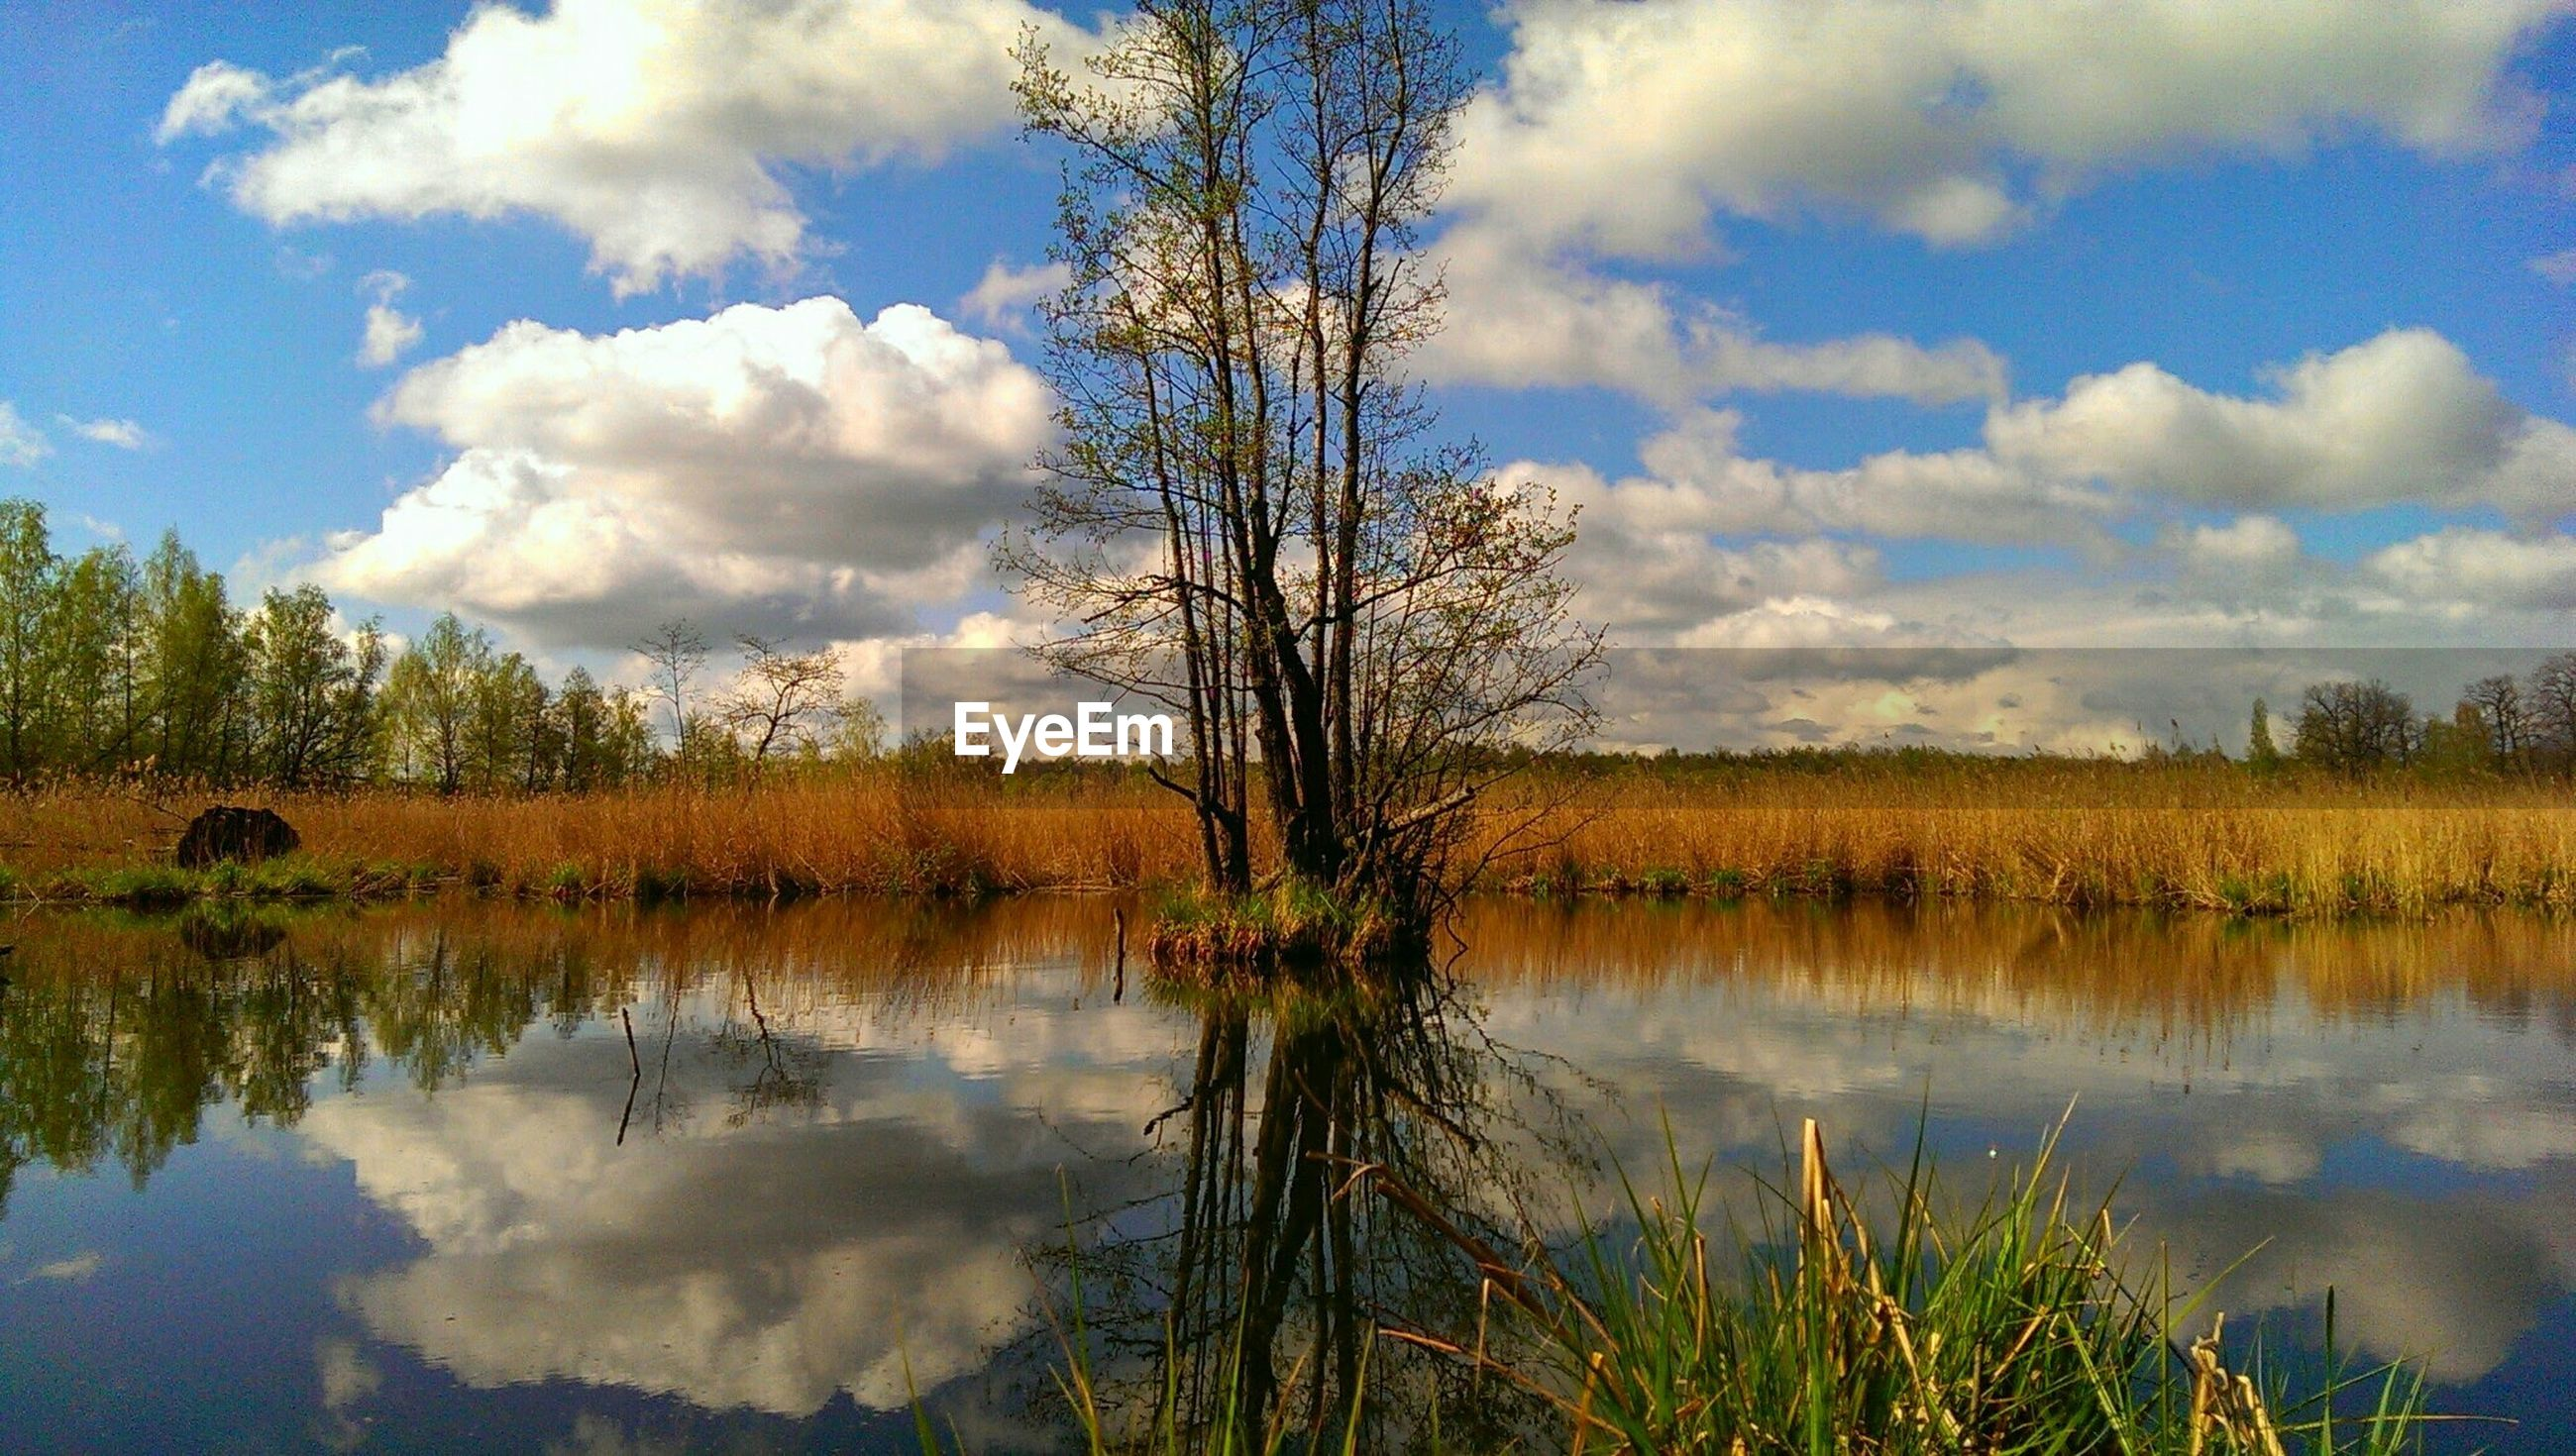 Trees reflecting on lake against cloudy sky